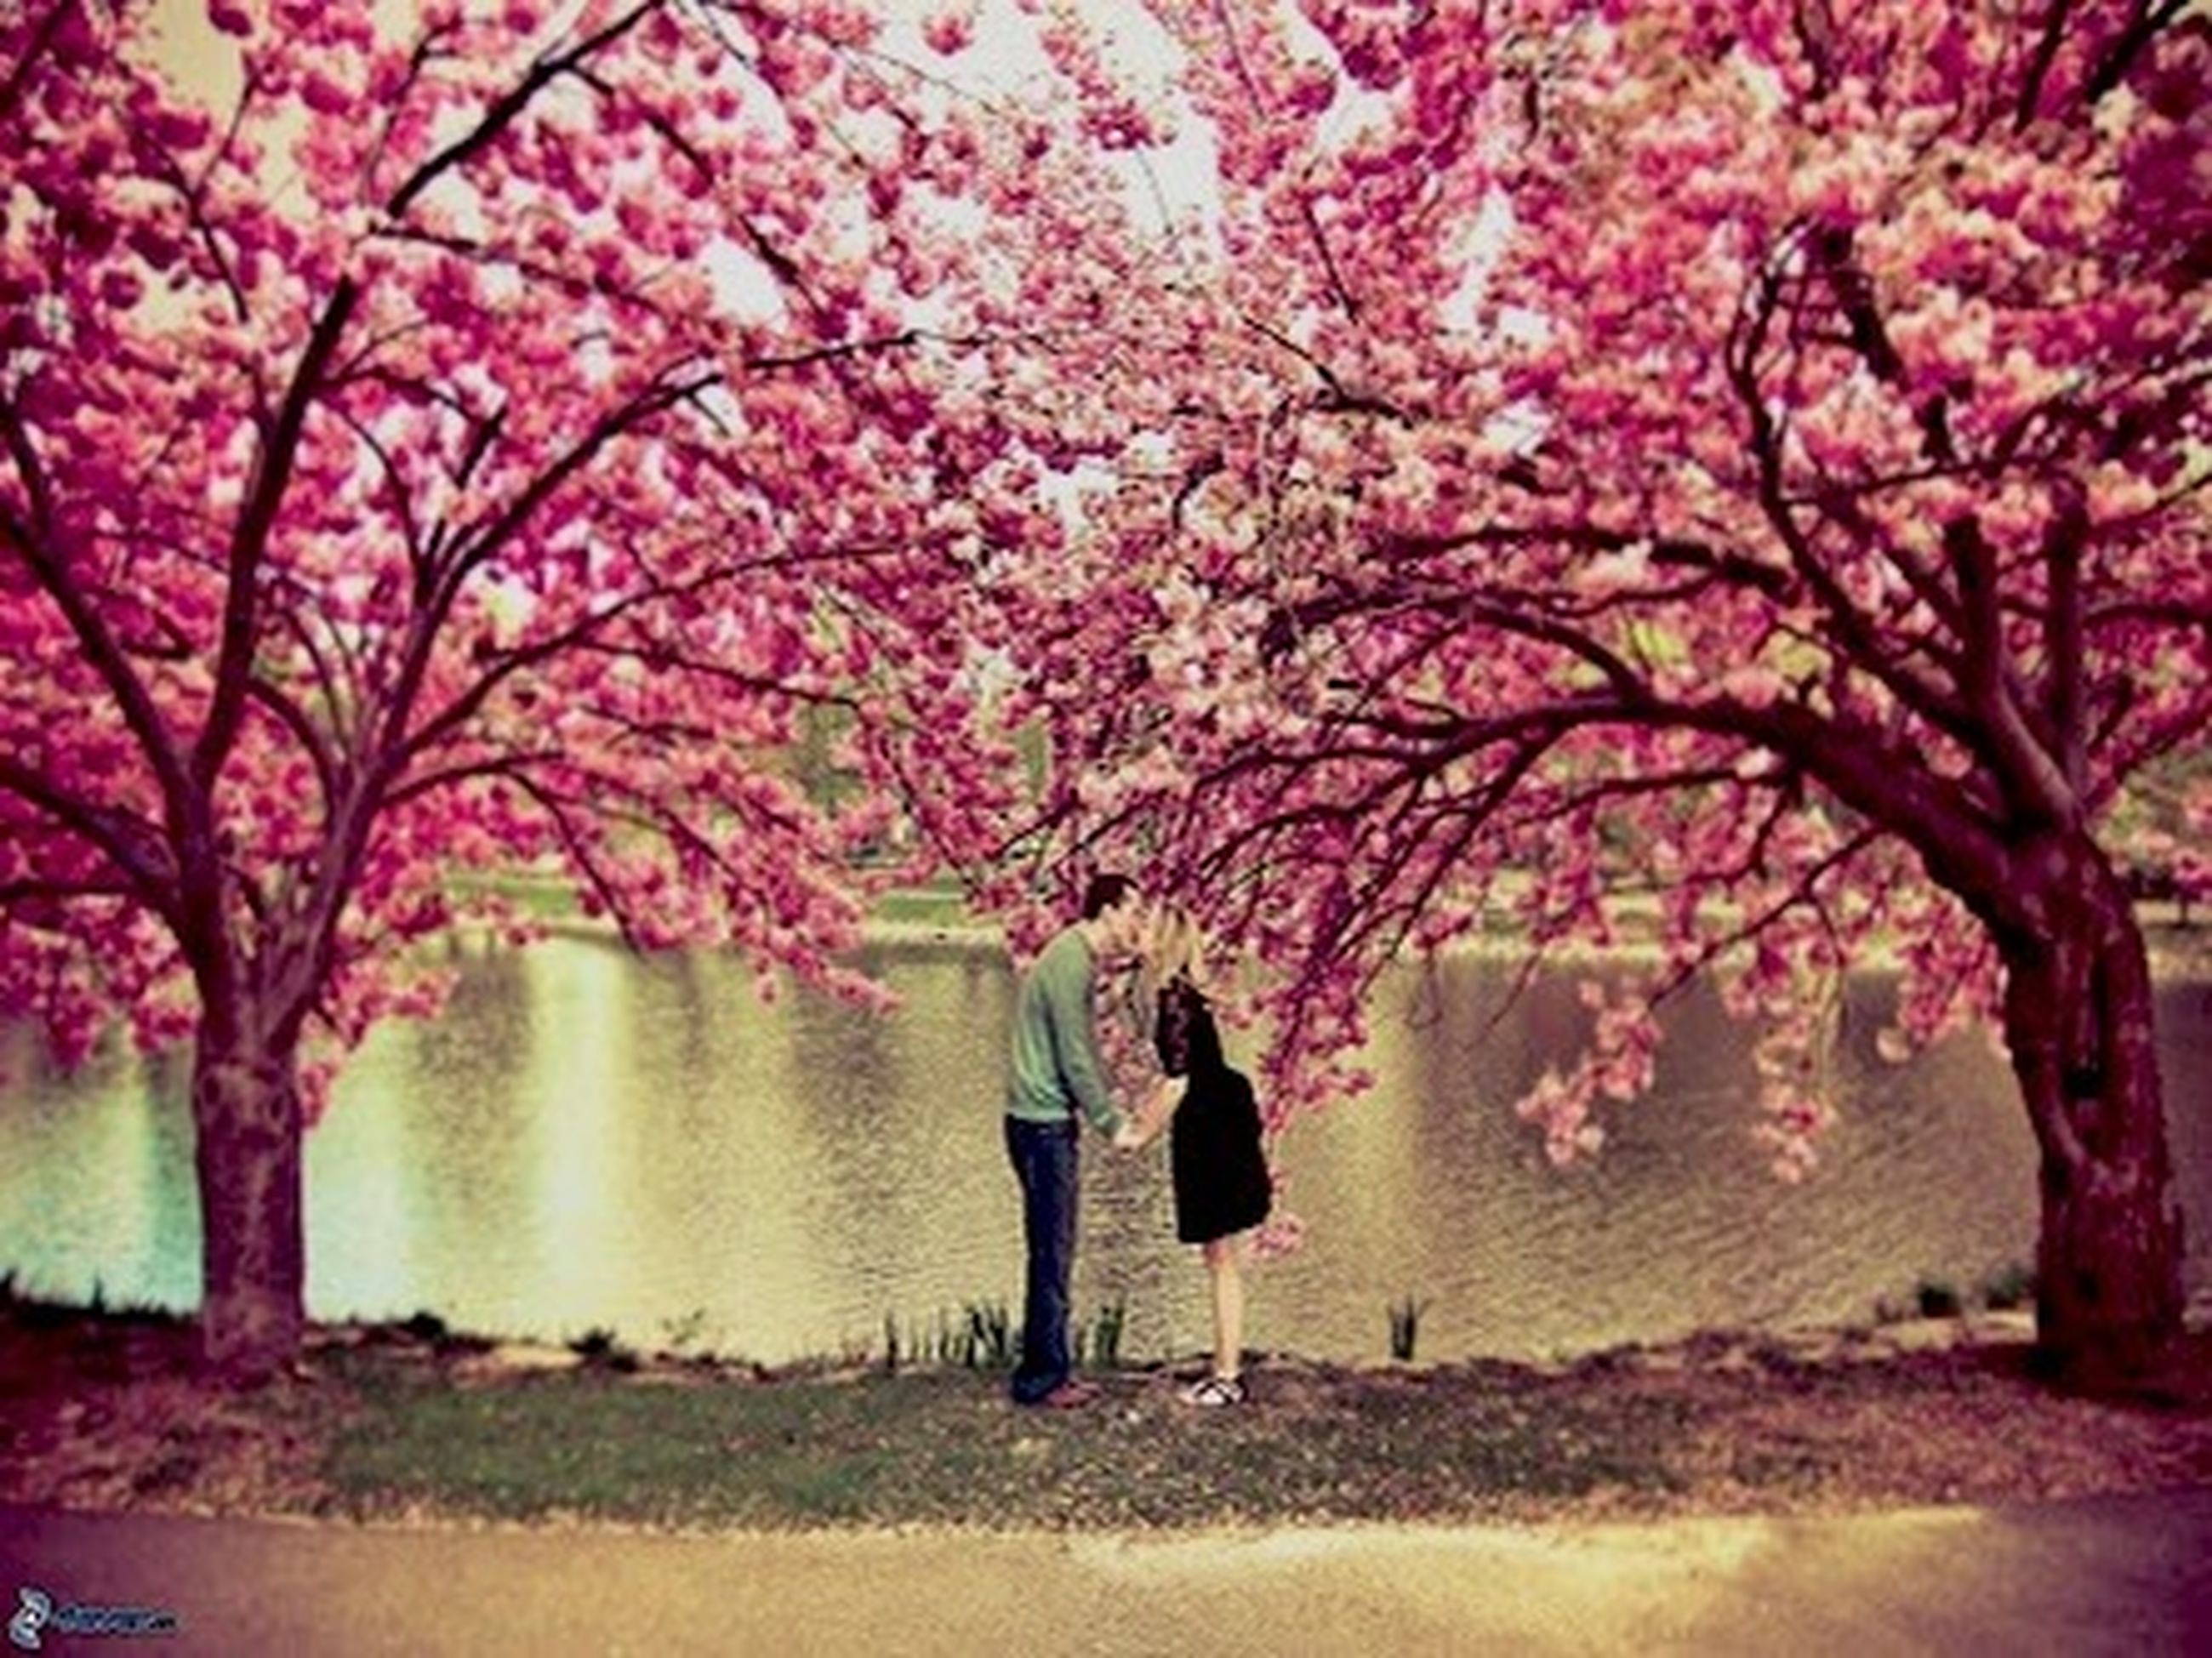 tree, flower, branch, pink color, beauty in nature, growth, nature, park - man made space, tranquil scene, tranquility, tree trunk, scenics, blossom, cherry blossom, freshness, outdoors, pink, park, day, incidental people